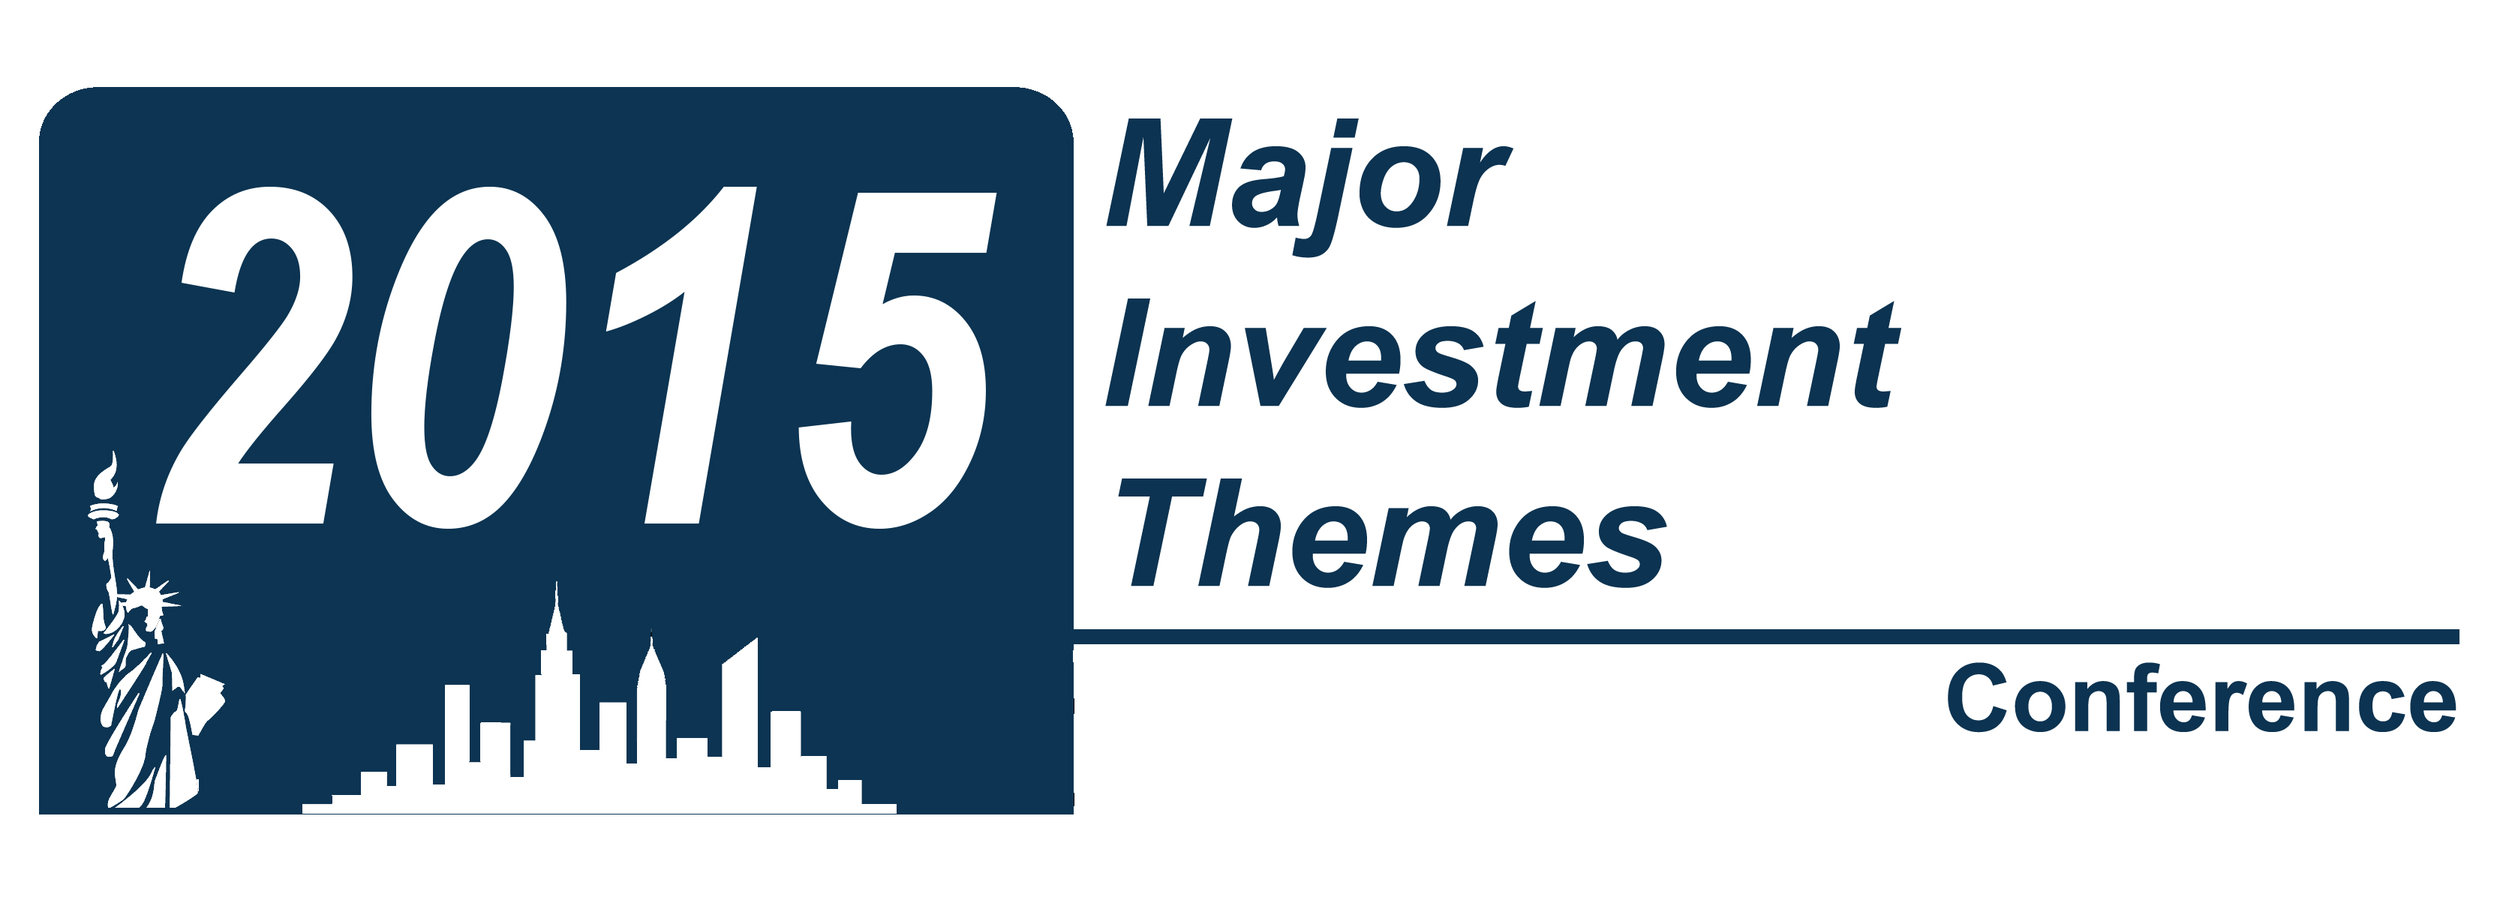 Major-Investment-Themes-Conference-Logo.jpg